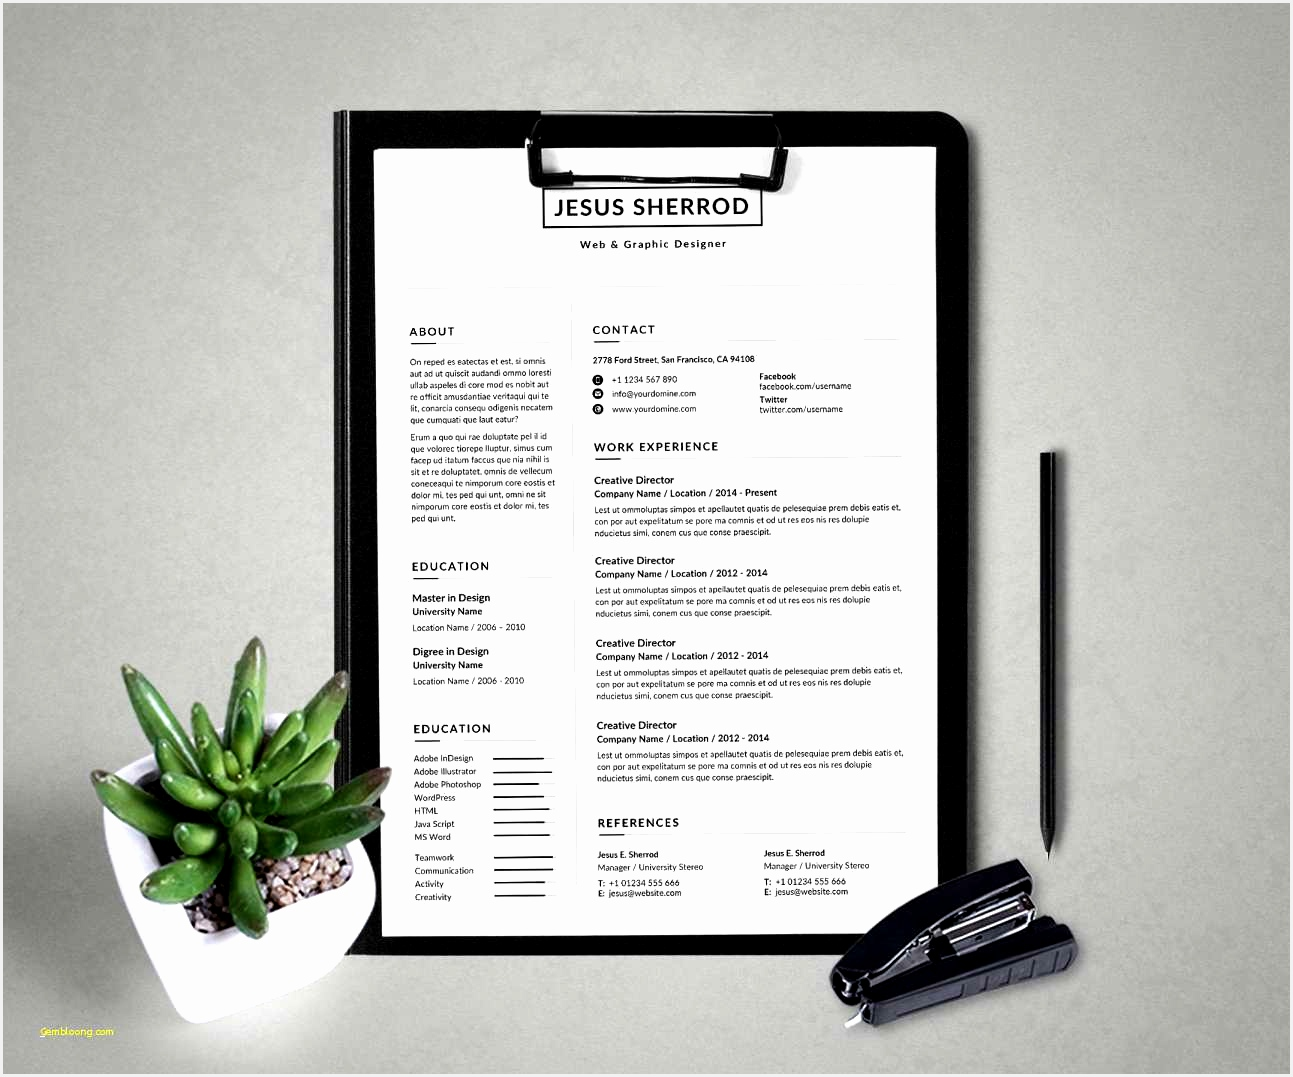 shop Resume Templates New Resume for Teachers Template with Modern Resume Template Cv Template10771293